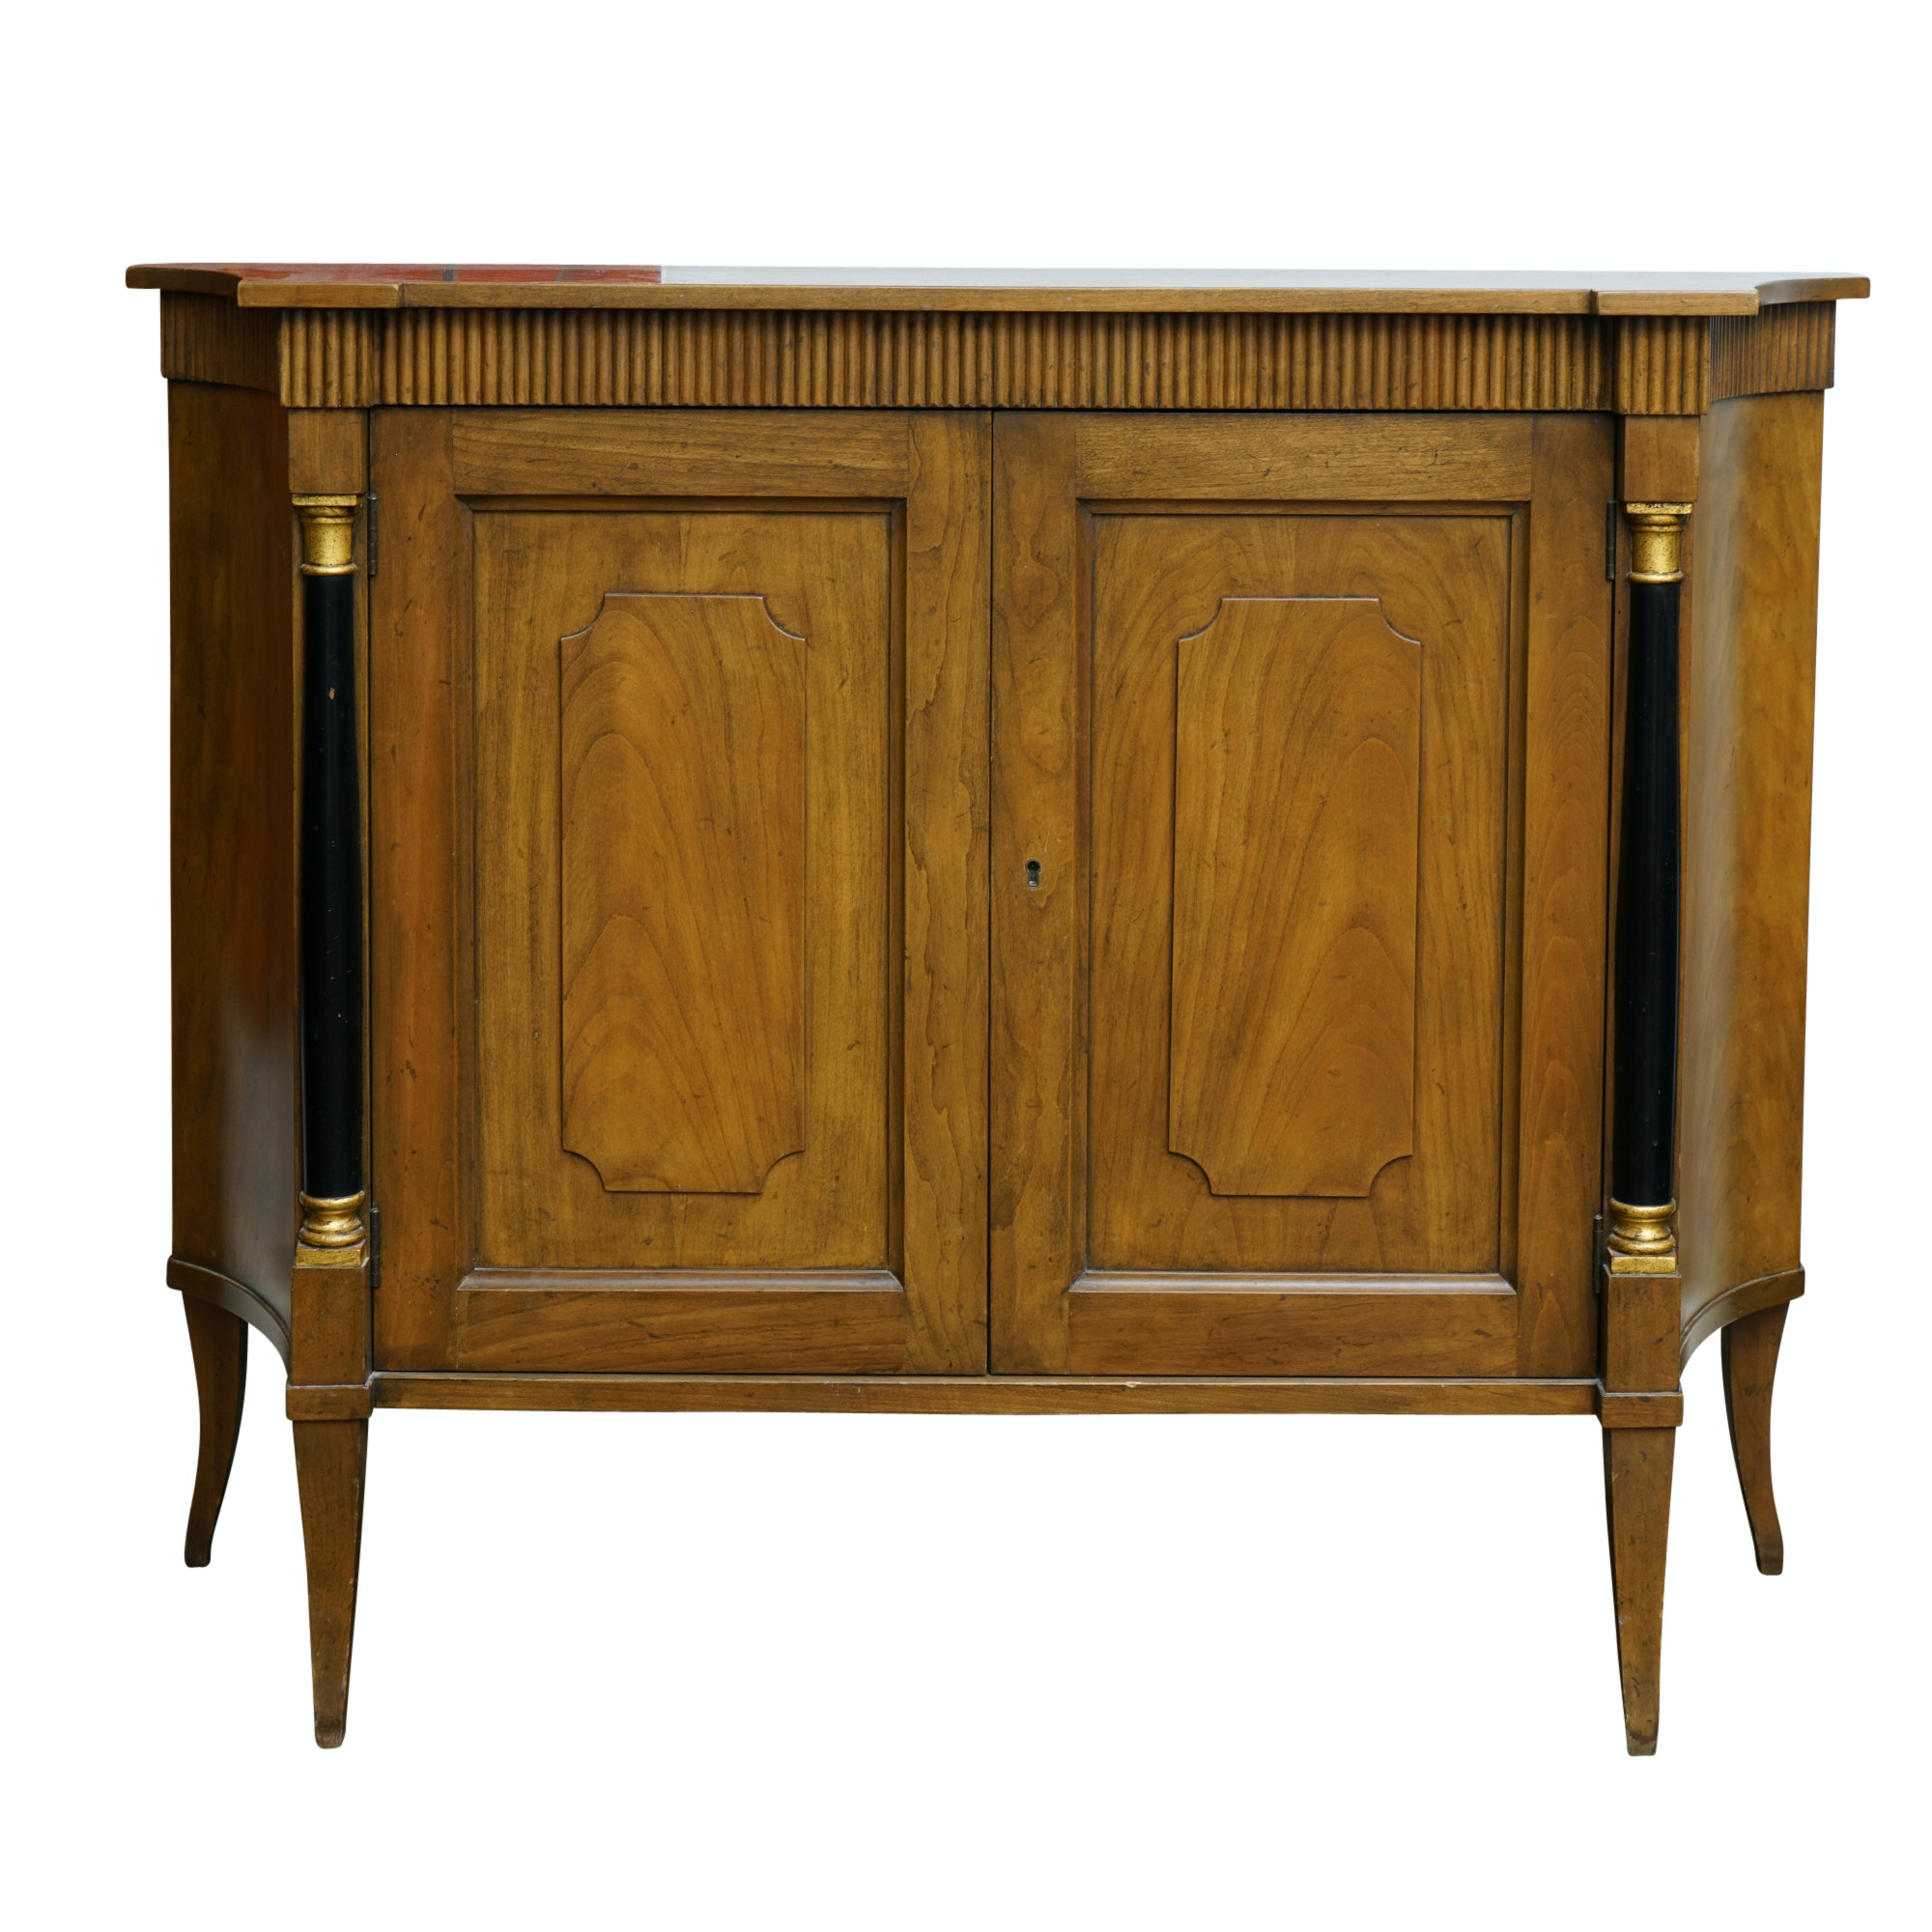 Vintage Neoclassical Style Walnut Side Cabinet by Baker Furniture